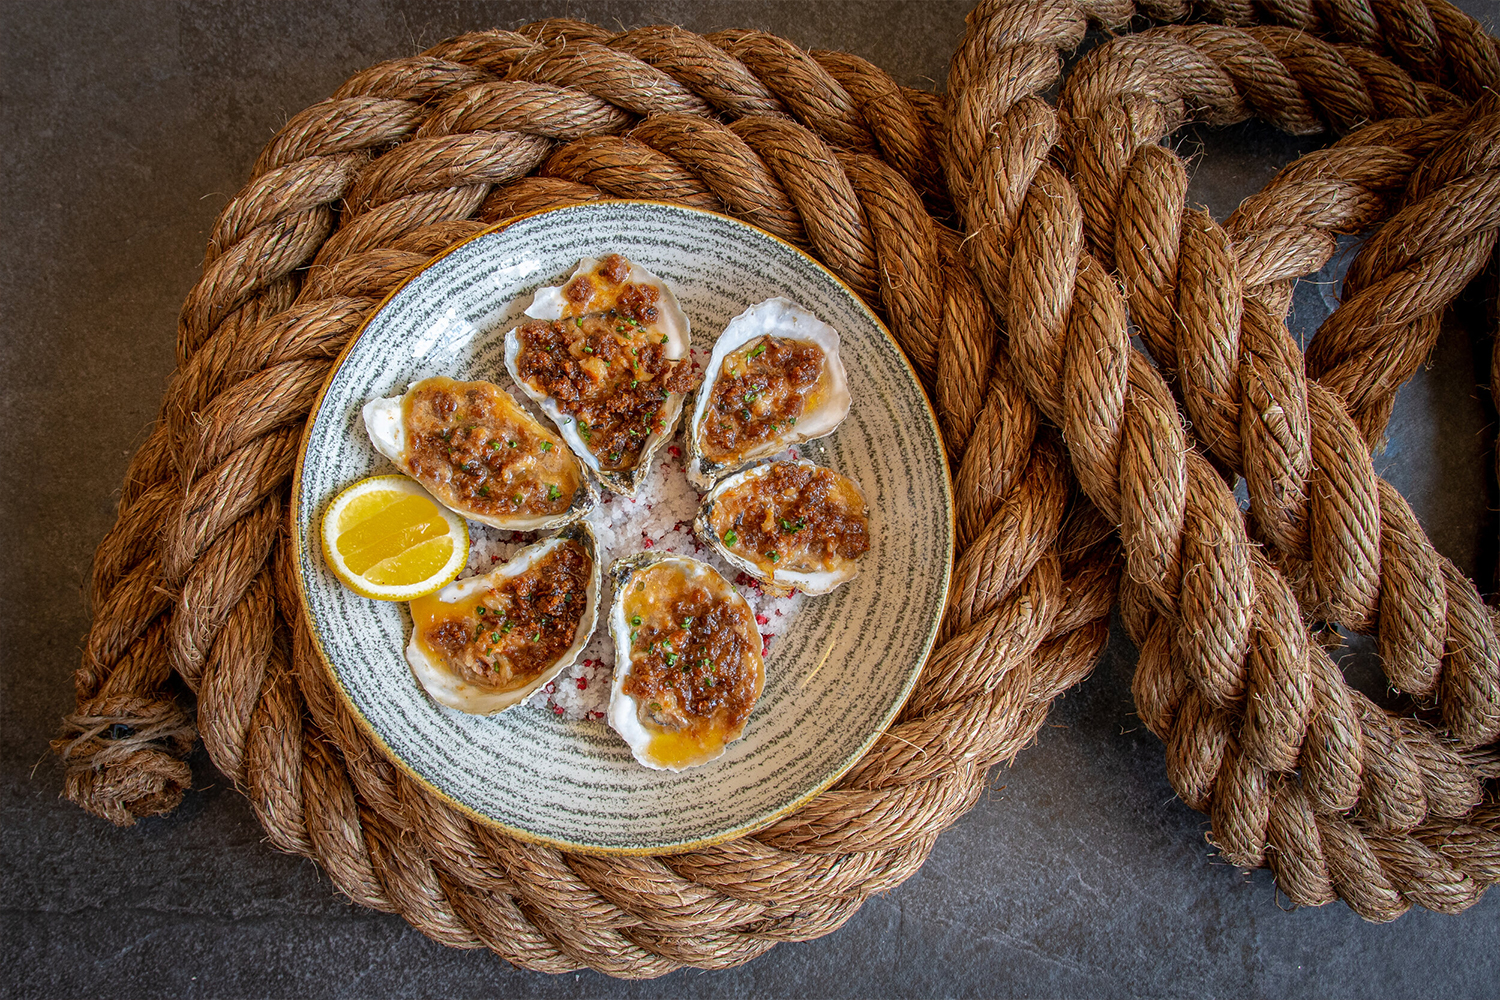 Oysters from The Point